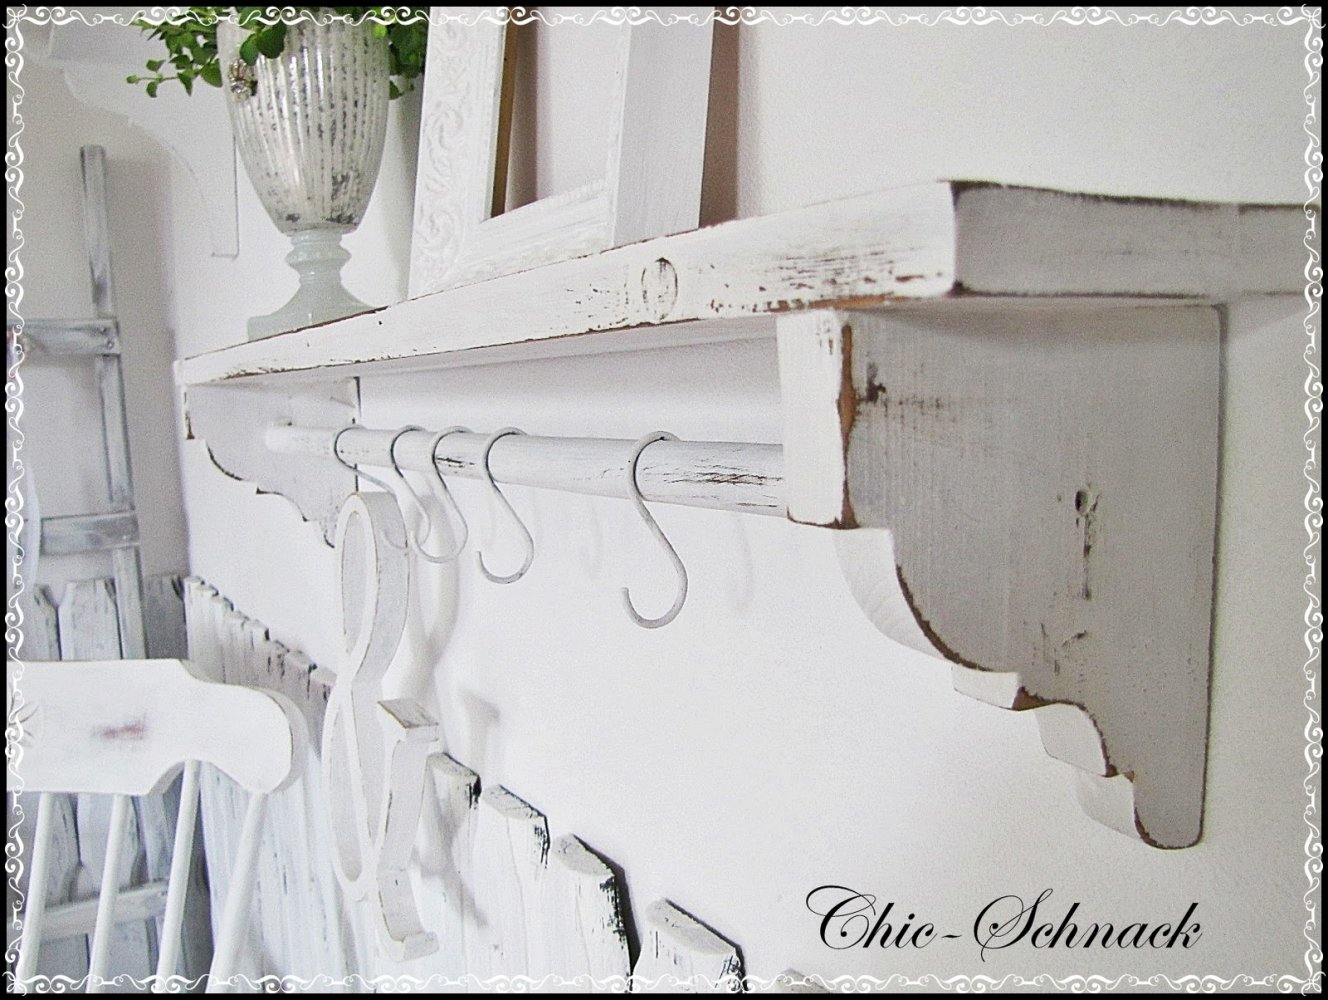 roomeon blog shabby chic nostalgie von chick schnack. Black Bedroom Furniture Sets. Home Design Ideas